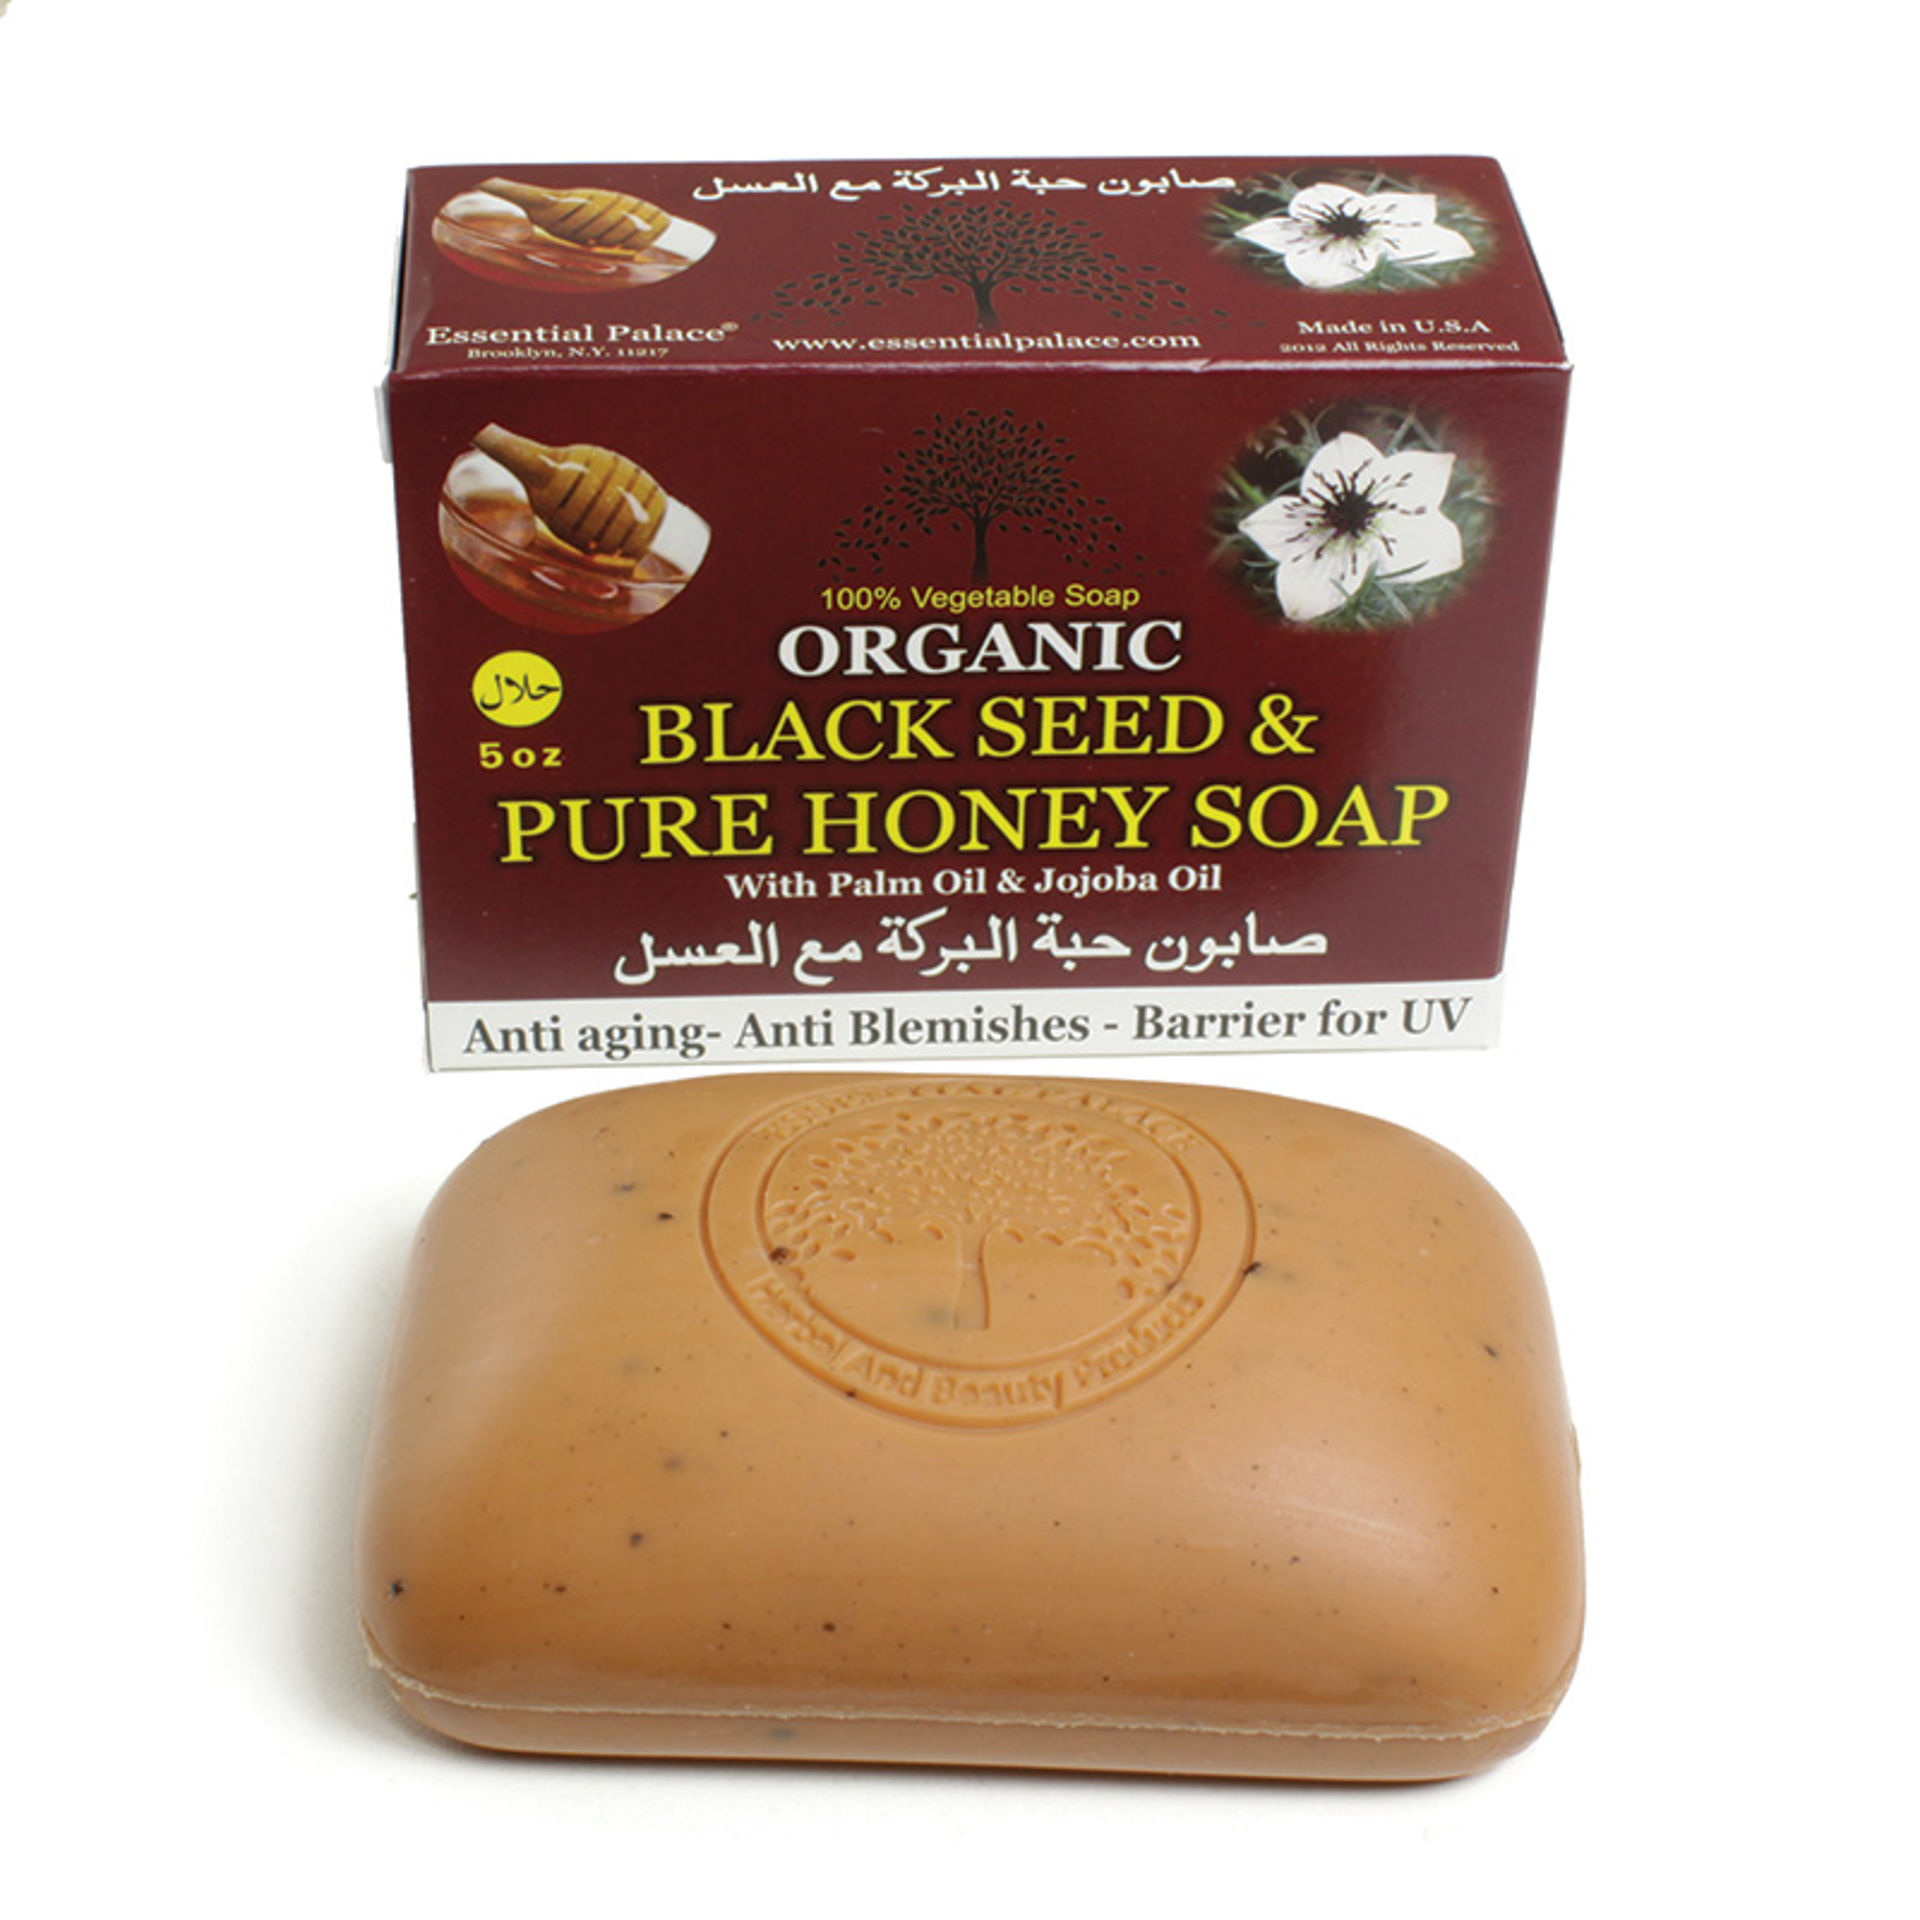 Picture of Organic Black Seed & Honey Soap - 5 oz.